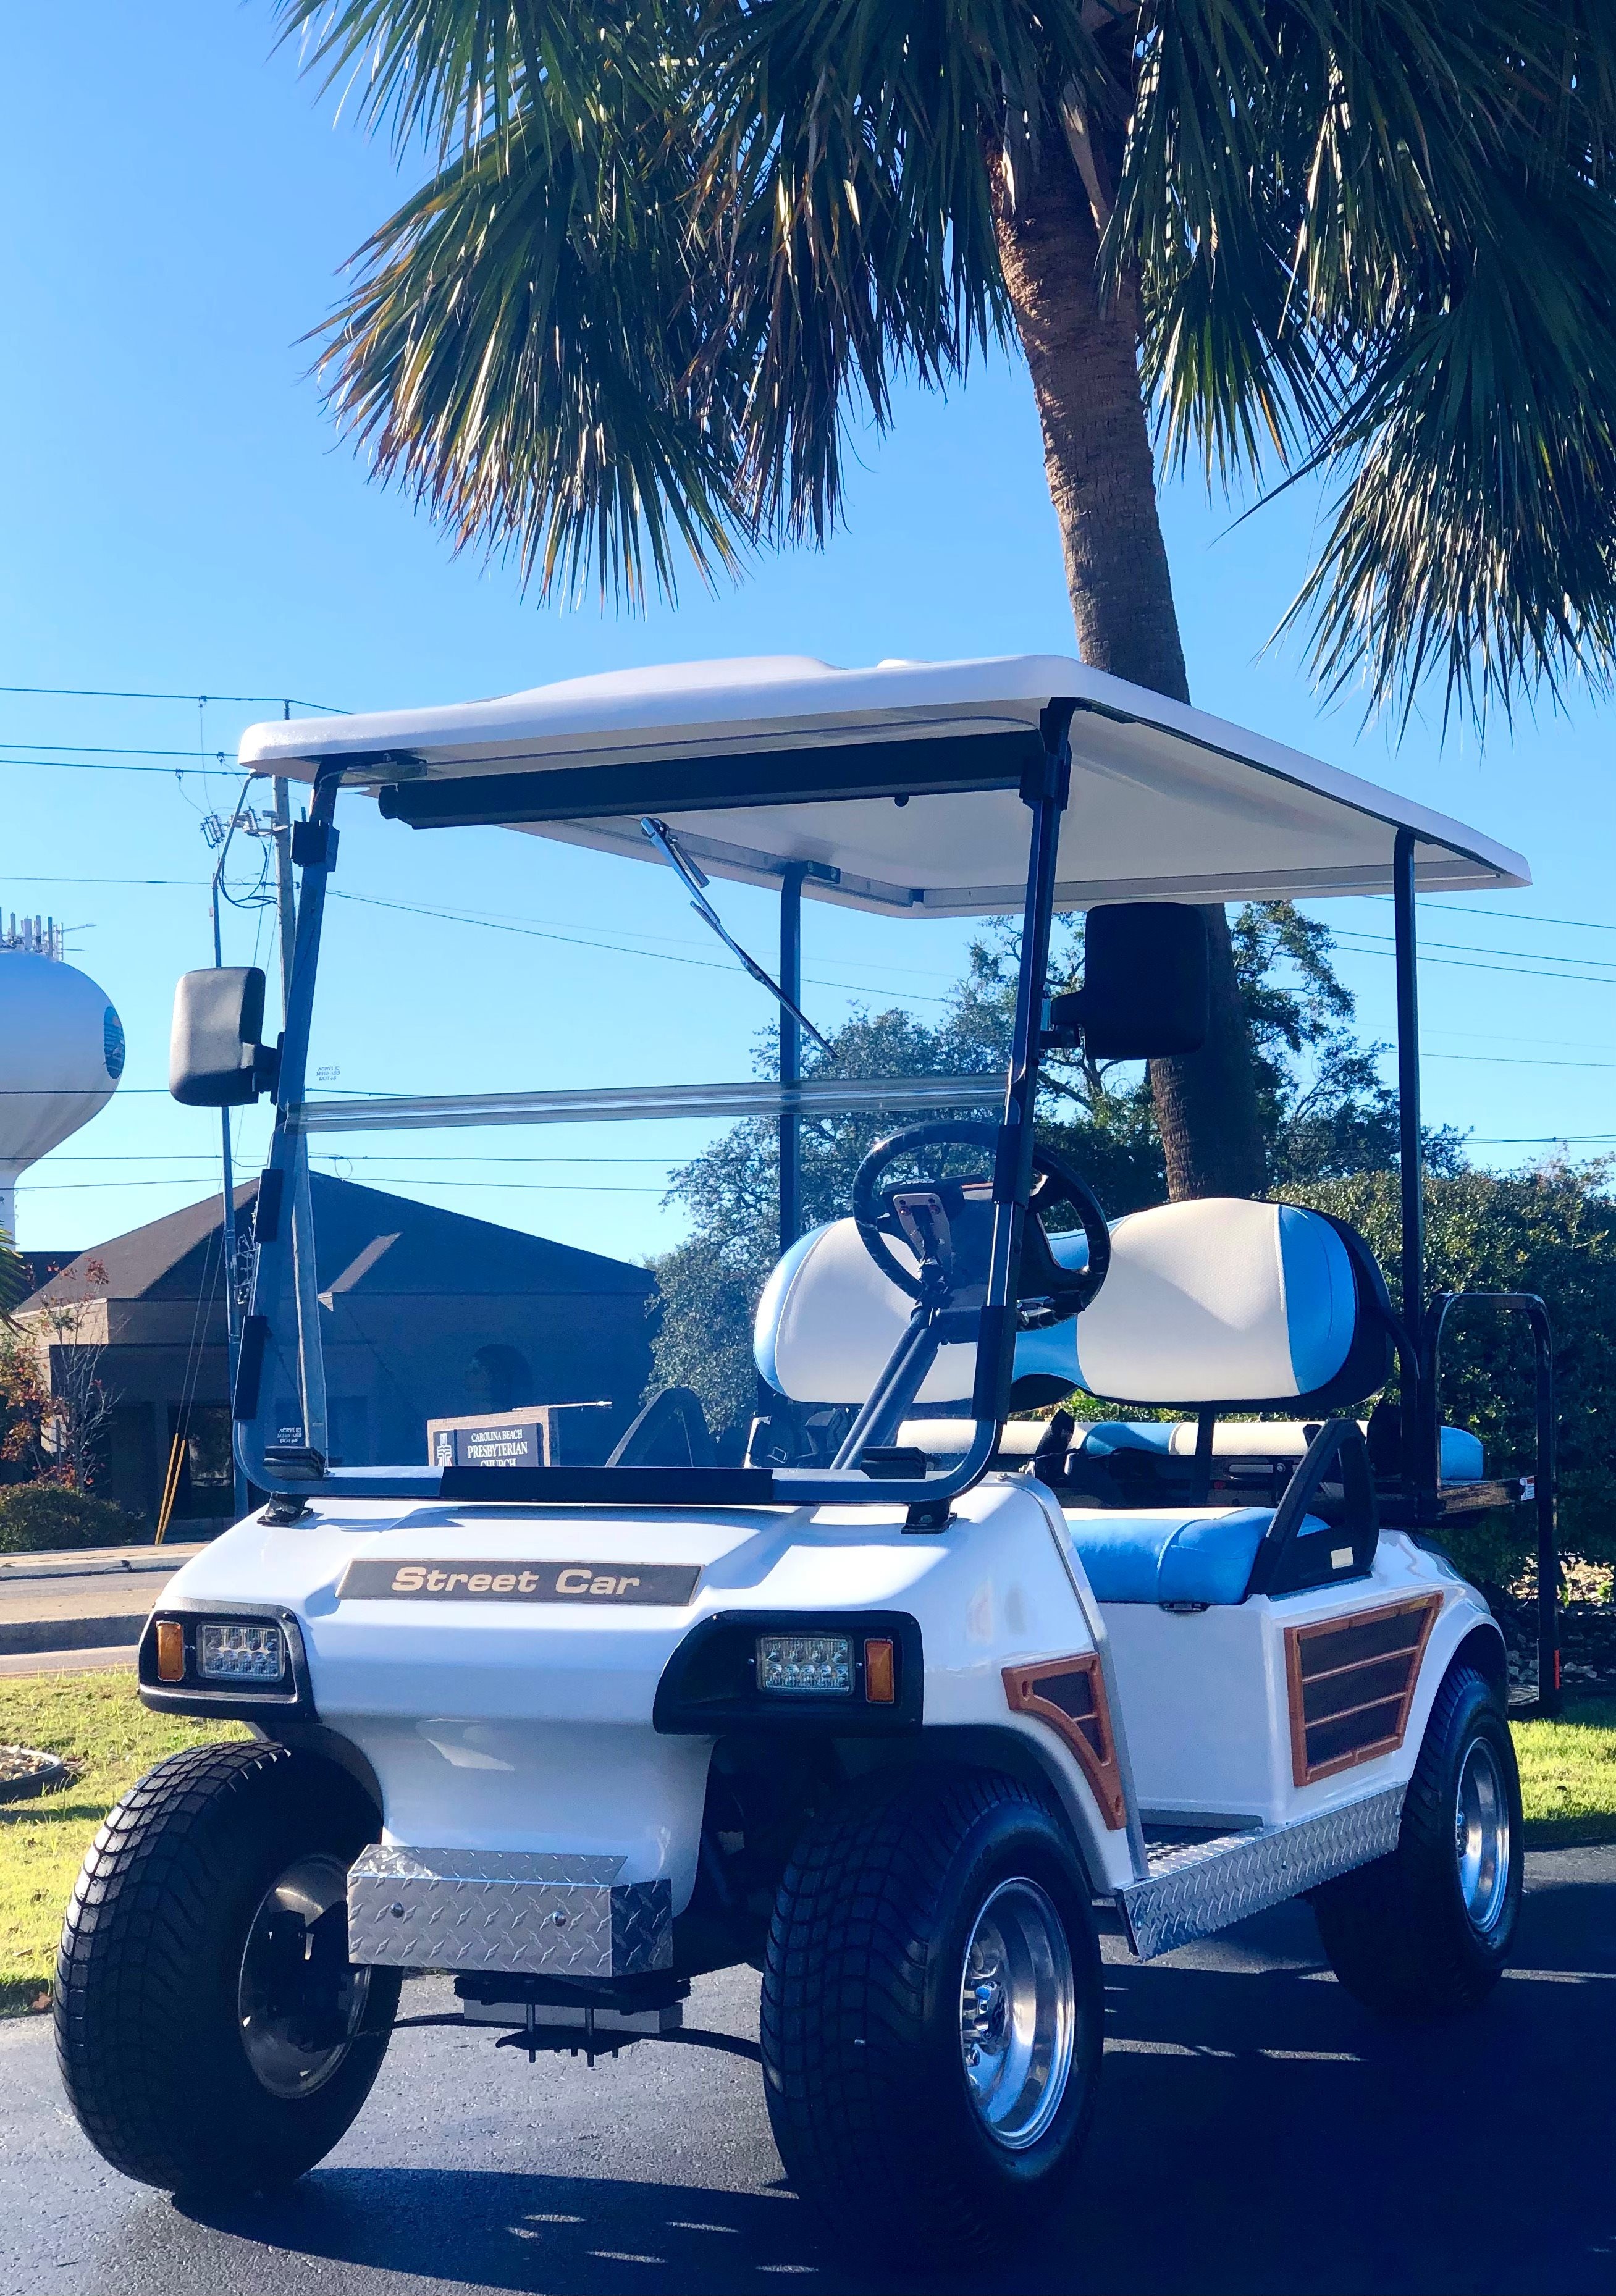 2008 WOODY Club Car DS remanufactured 4 Passenger NON-LIFTED